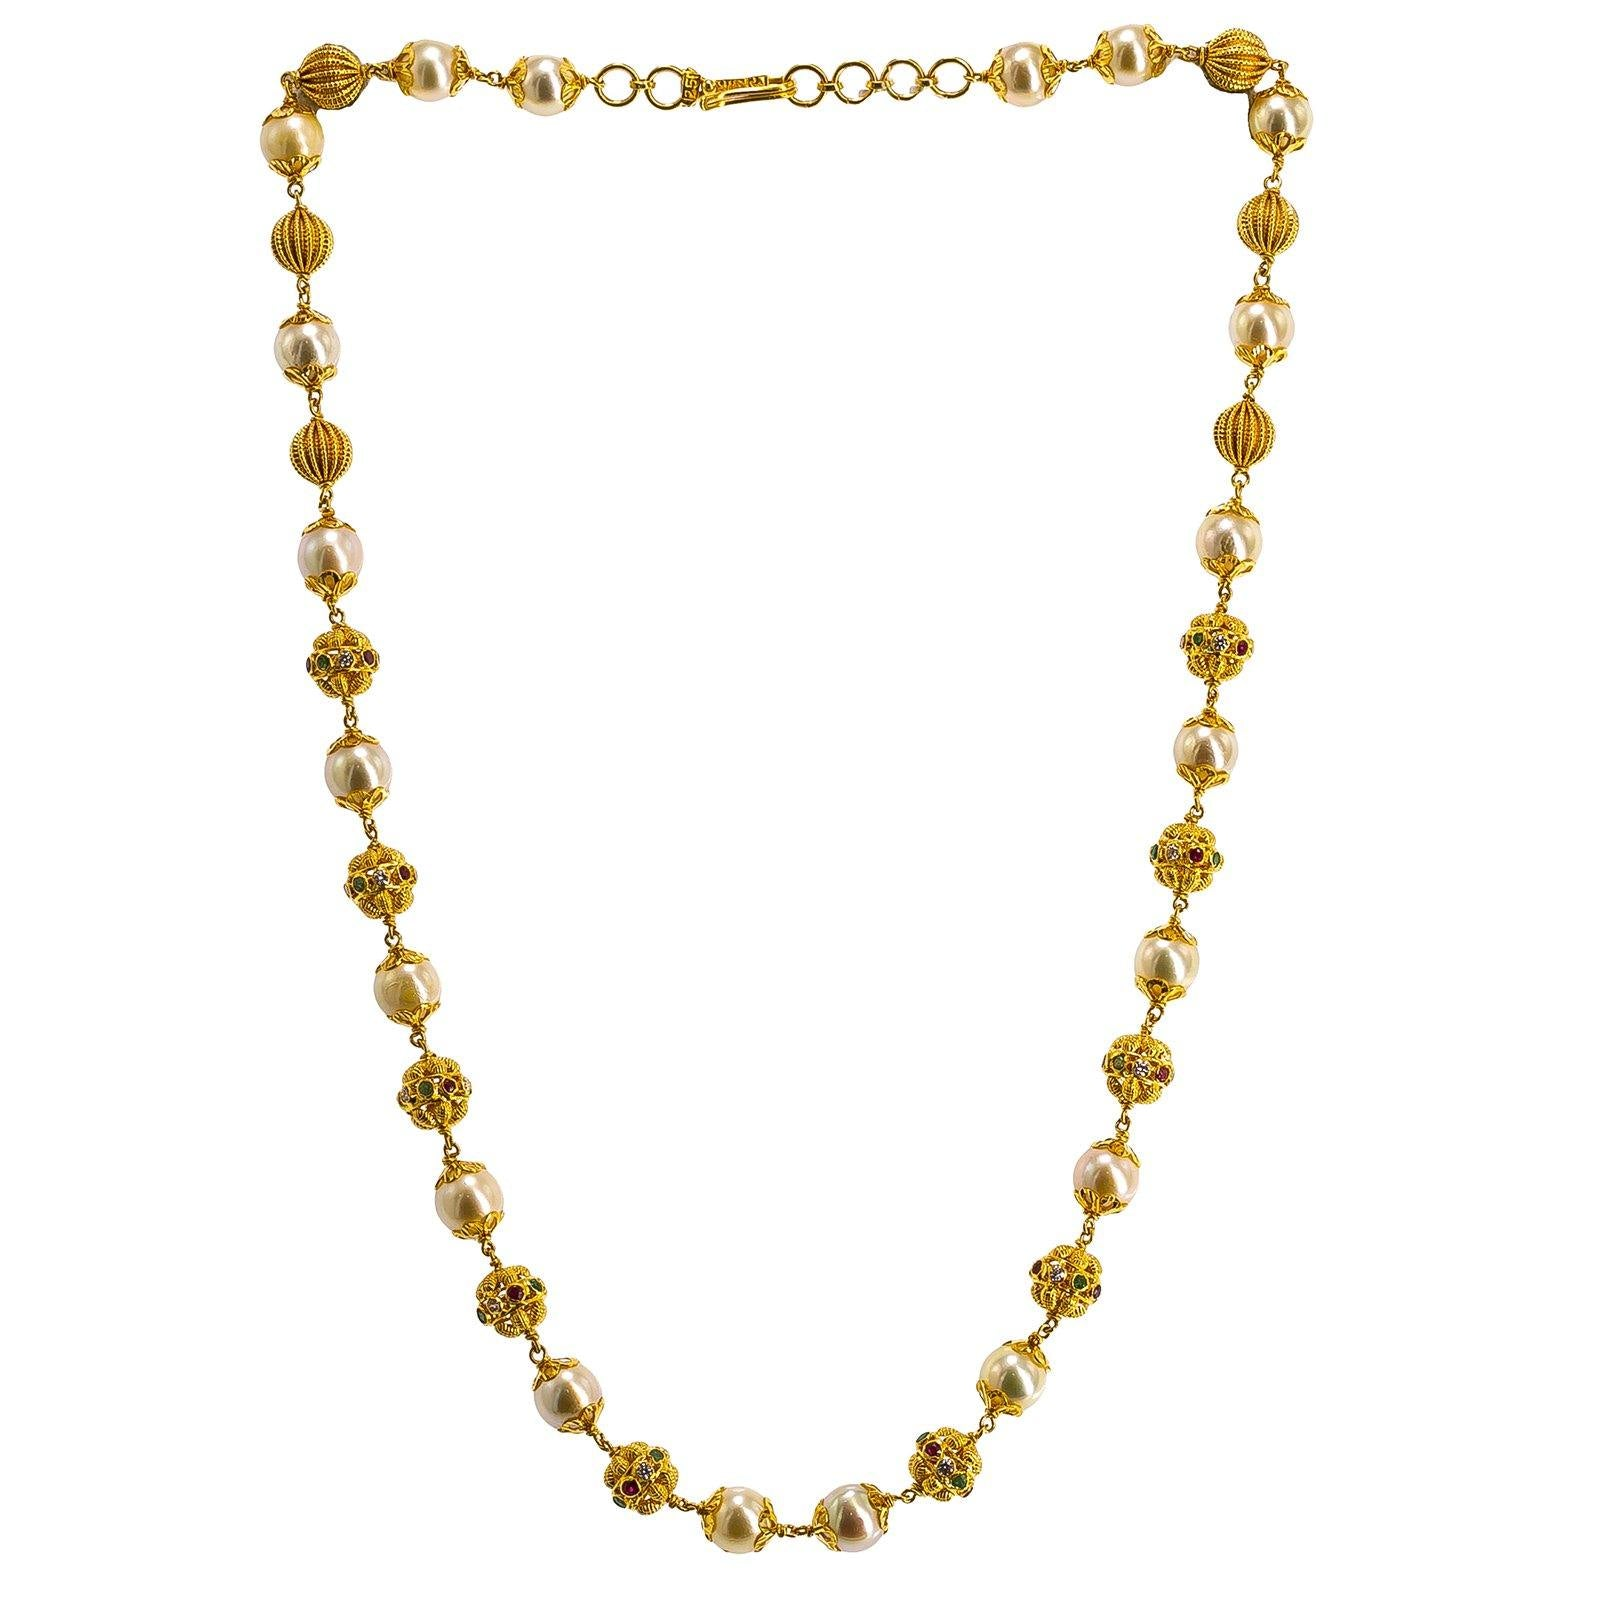 22K Yellow Gold Ball Chain W/ Pearls, Emeralds, Rubies & CZ Gems